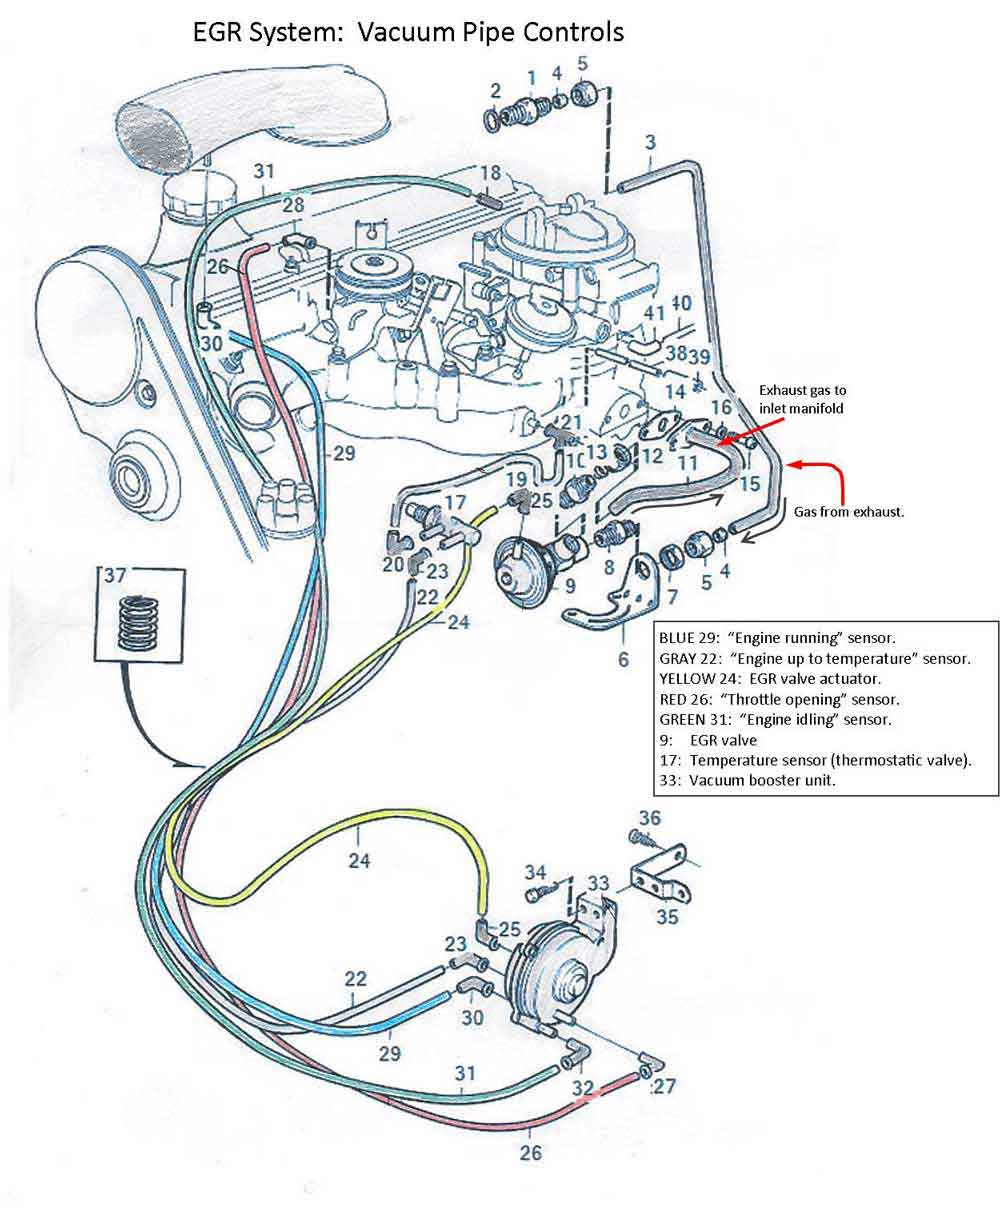 vac B230K 89 EGR volvo vacuum diagrams 1990 Volvo 240 Wiring Manual at soozxer.org